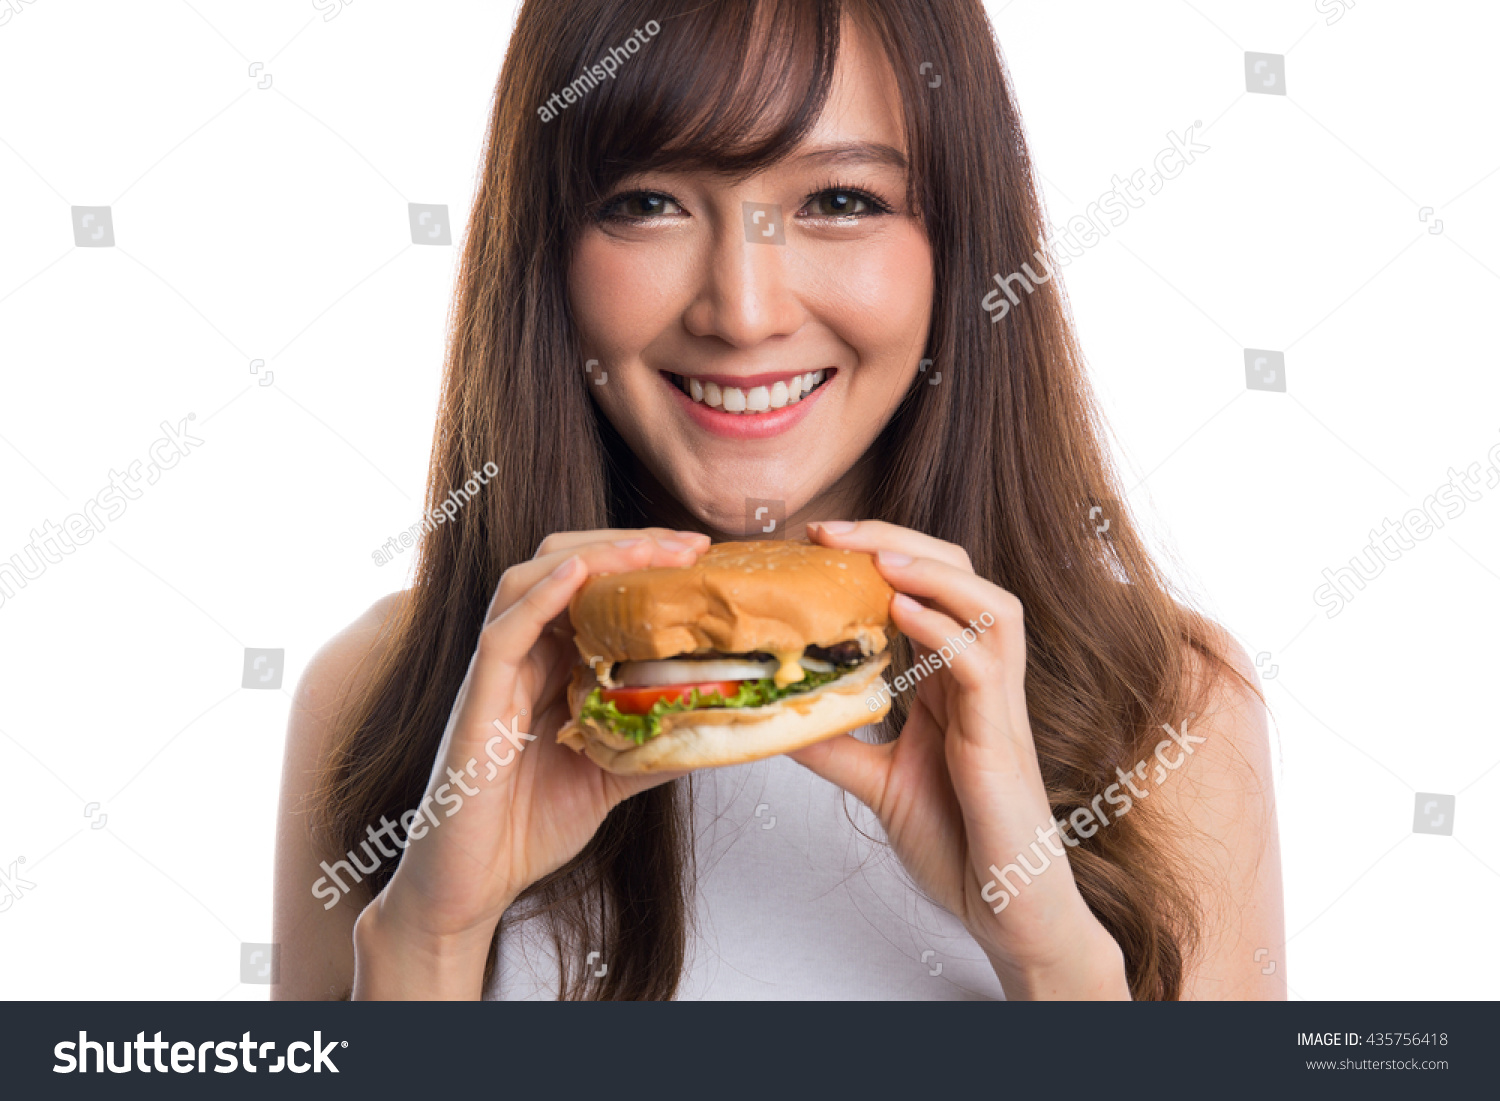 Young asian woman eating burger on white background, unhealthy eating and  diet concepts.